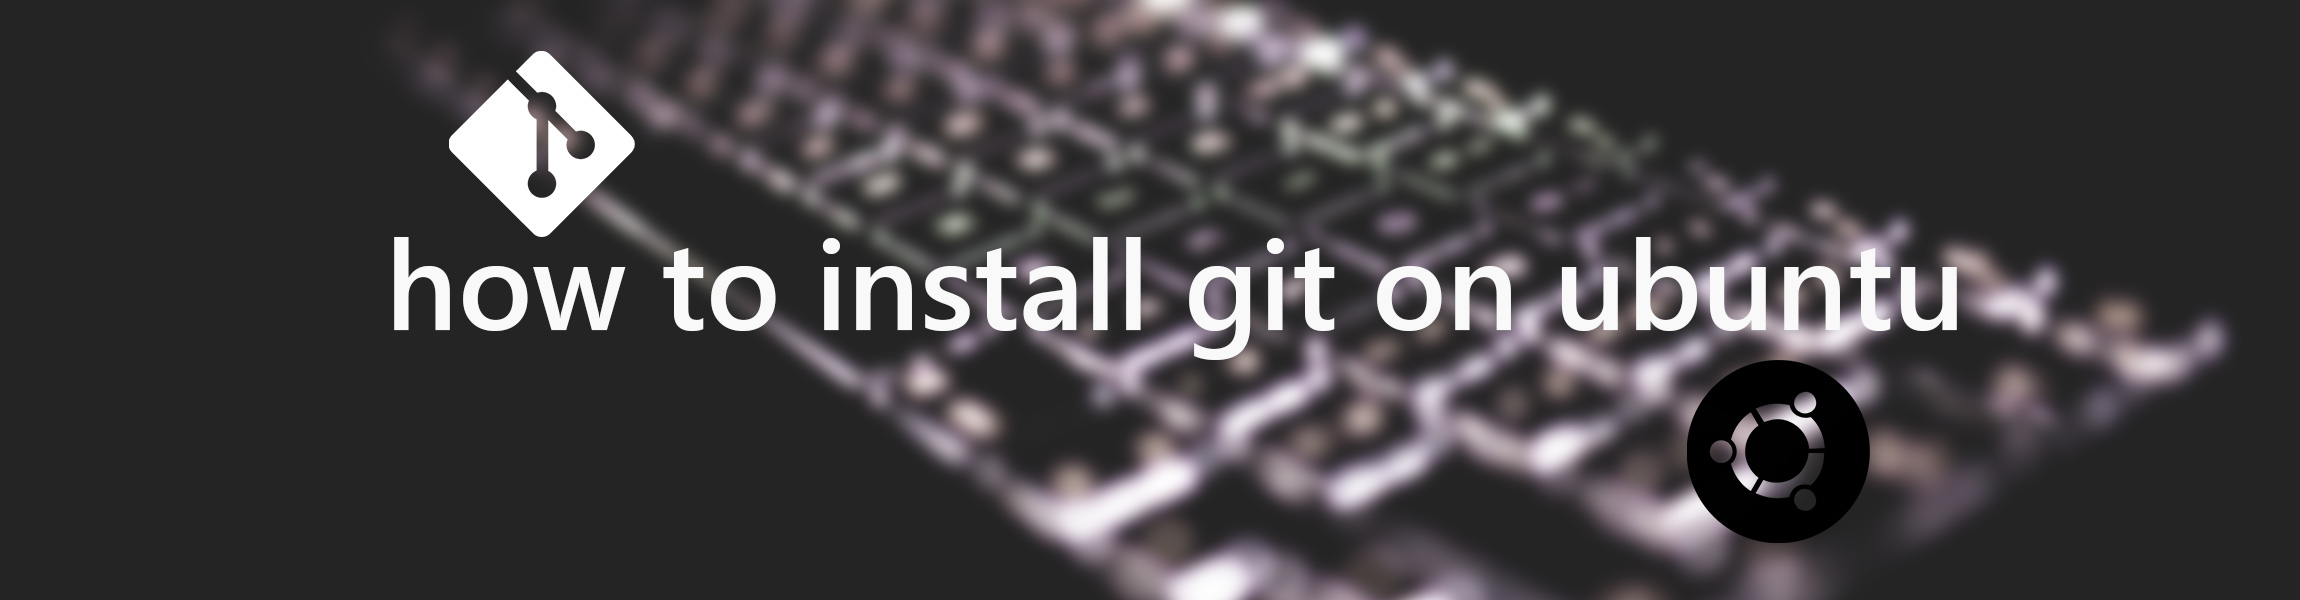 How to Install Git on Ubuntu – ThisHosting Rocks